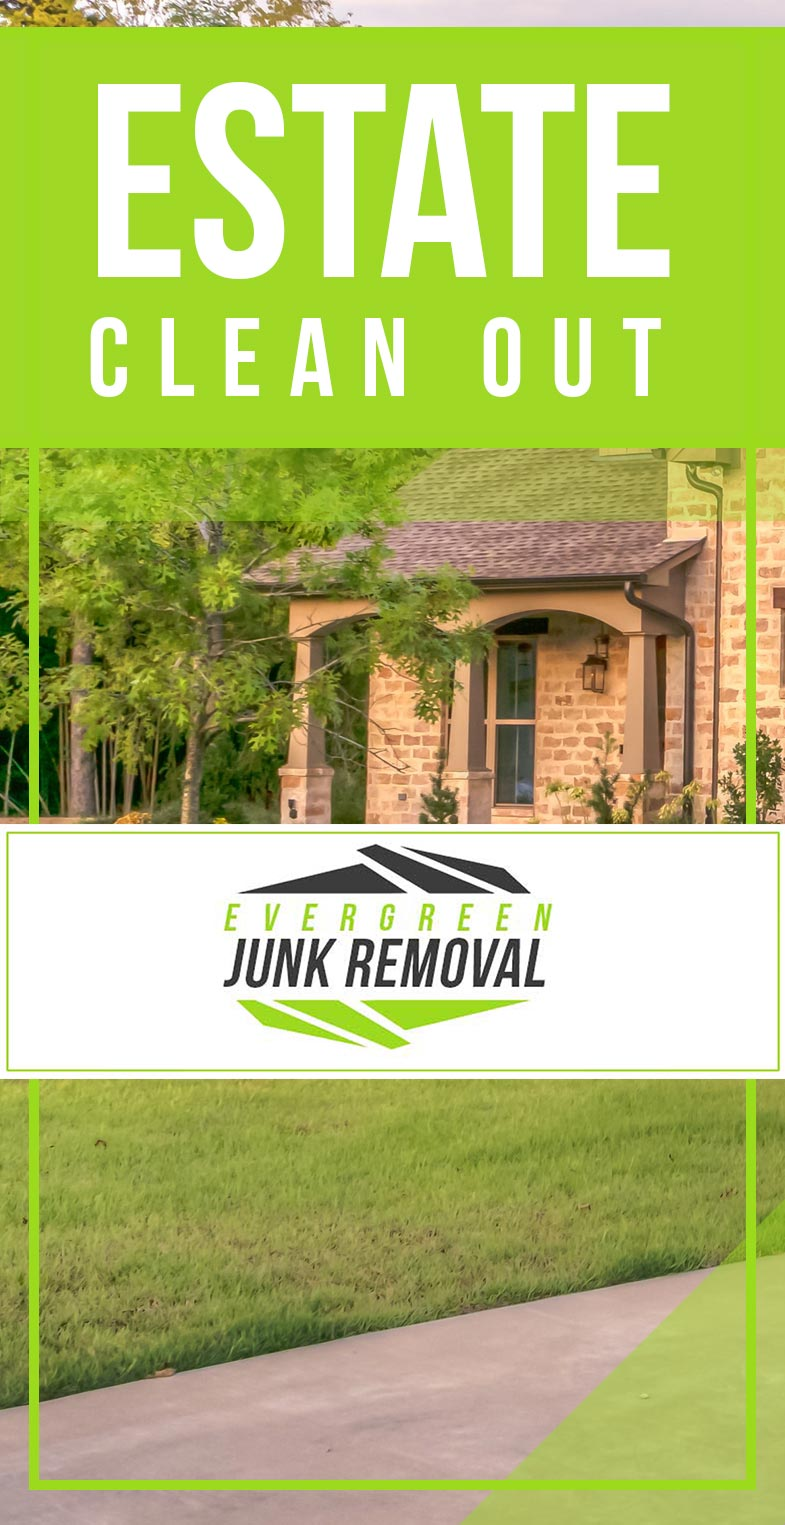 Junk Removal Atlantis Estate Clean Out